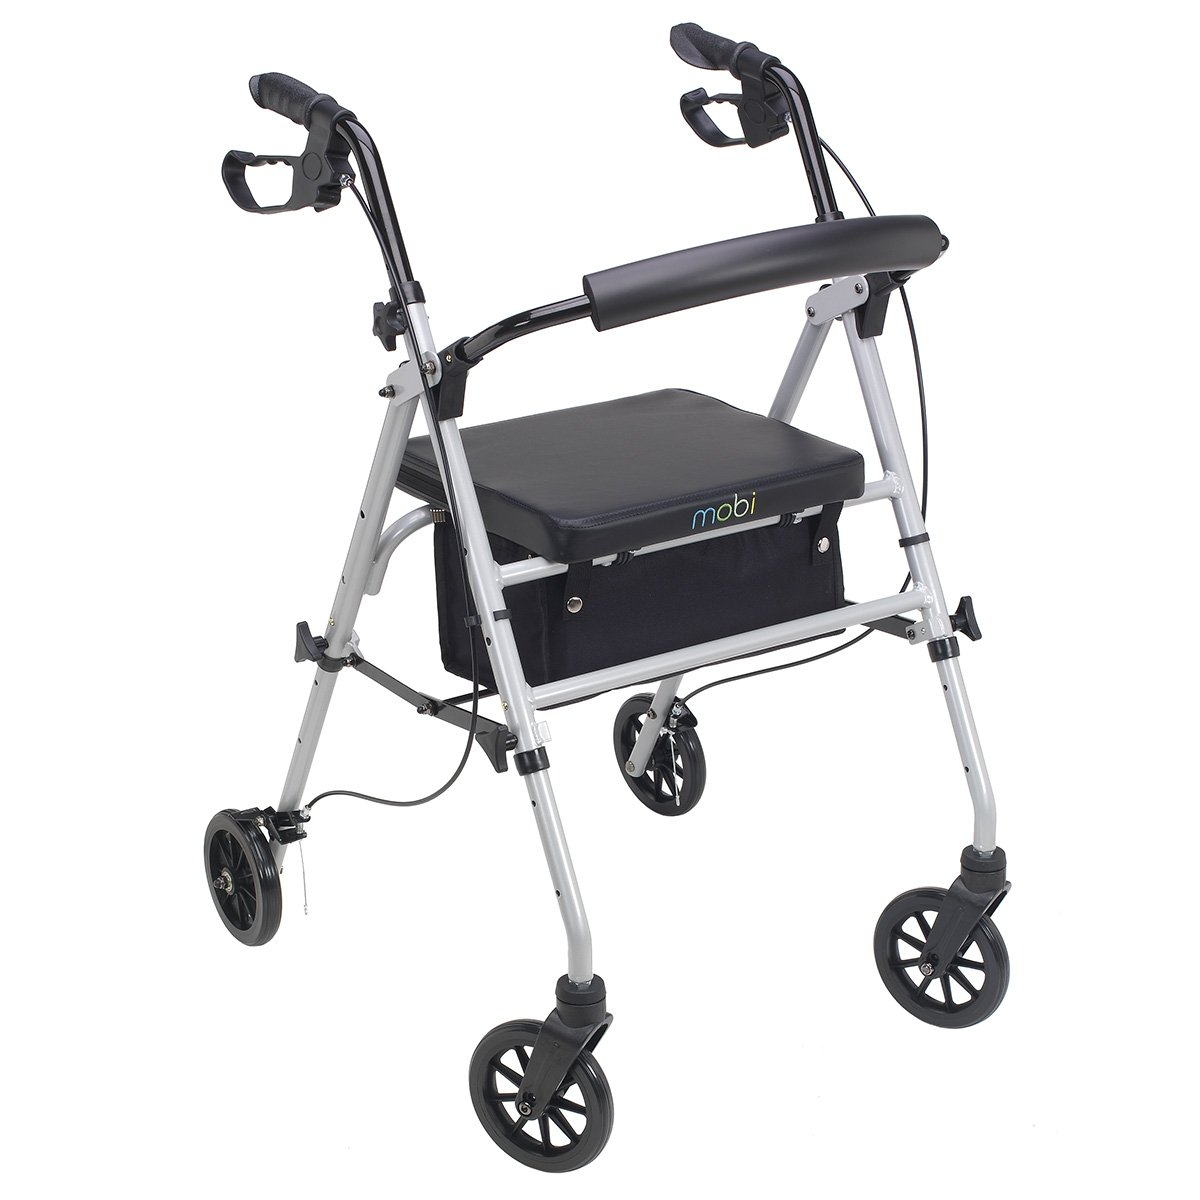 Juvo Folding Standard Rollator with 6'' Wheels and Height Adjustable Handles and Seat, 300 lb. Capacity, Silver (PR104)